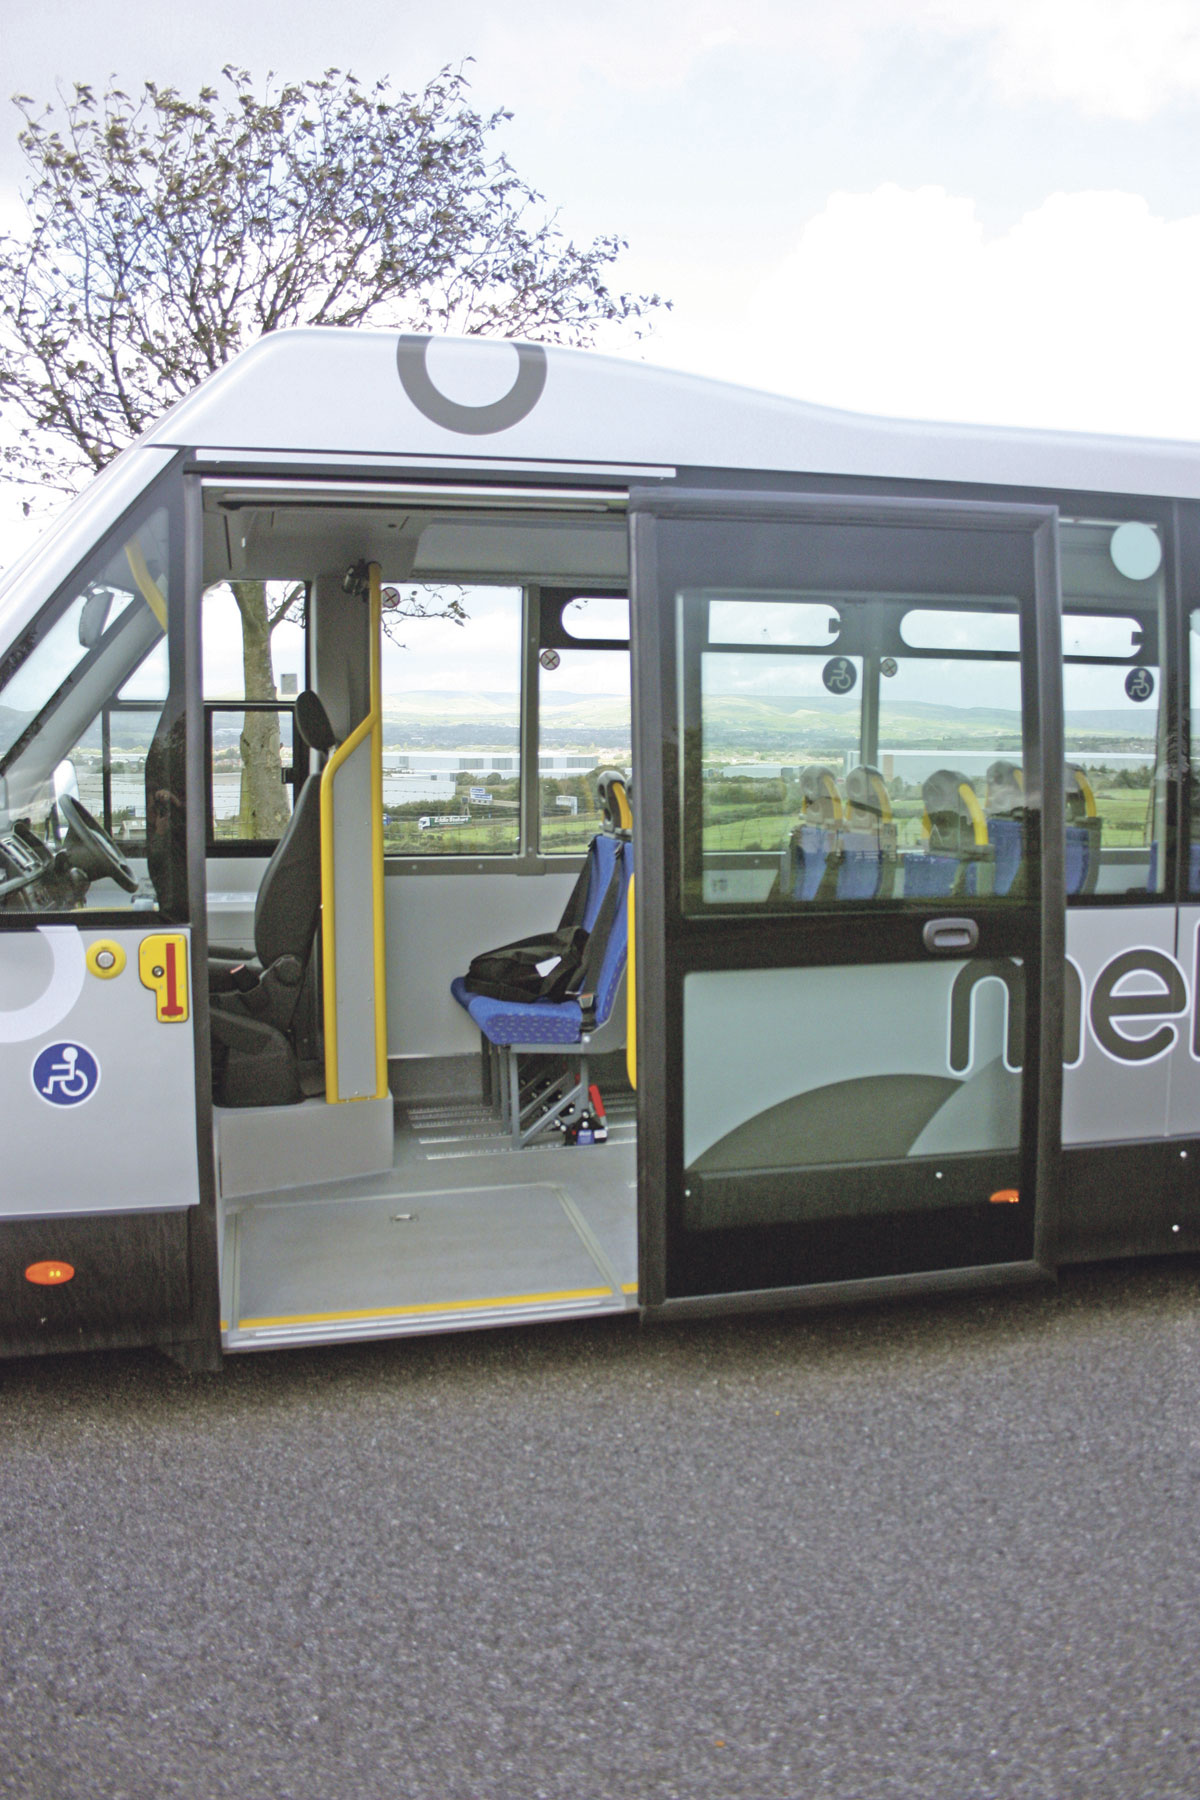 Large, wide front entrance with fast action Ventura plug door. Note the shallow step height of 270mm which can be reduced still further with the ramp and lowering rear suspension